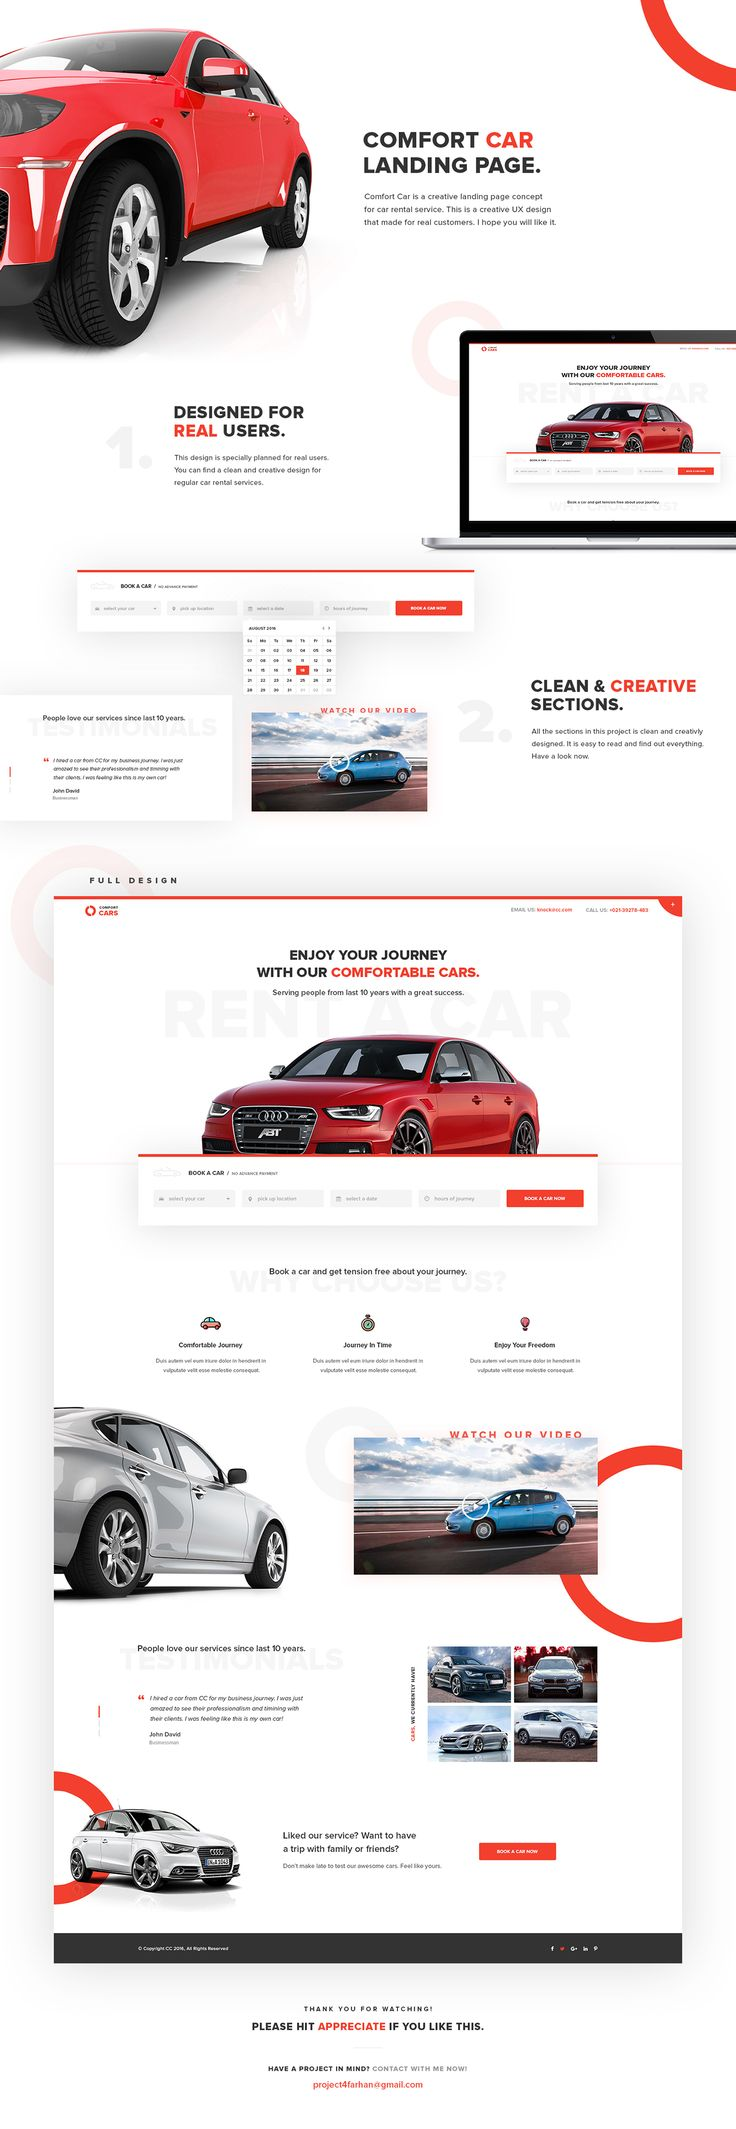 Comfort Car is a creative landing page concept for car rental service. This is a creative UX design that made for real customers. I hope you will like it.